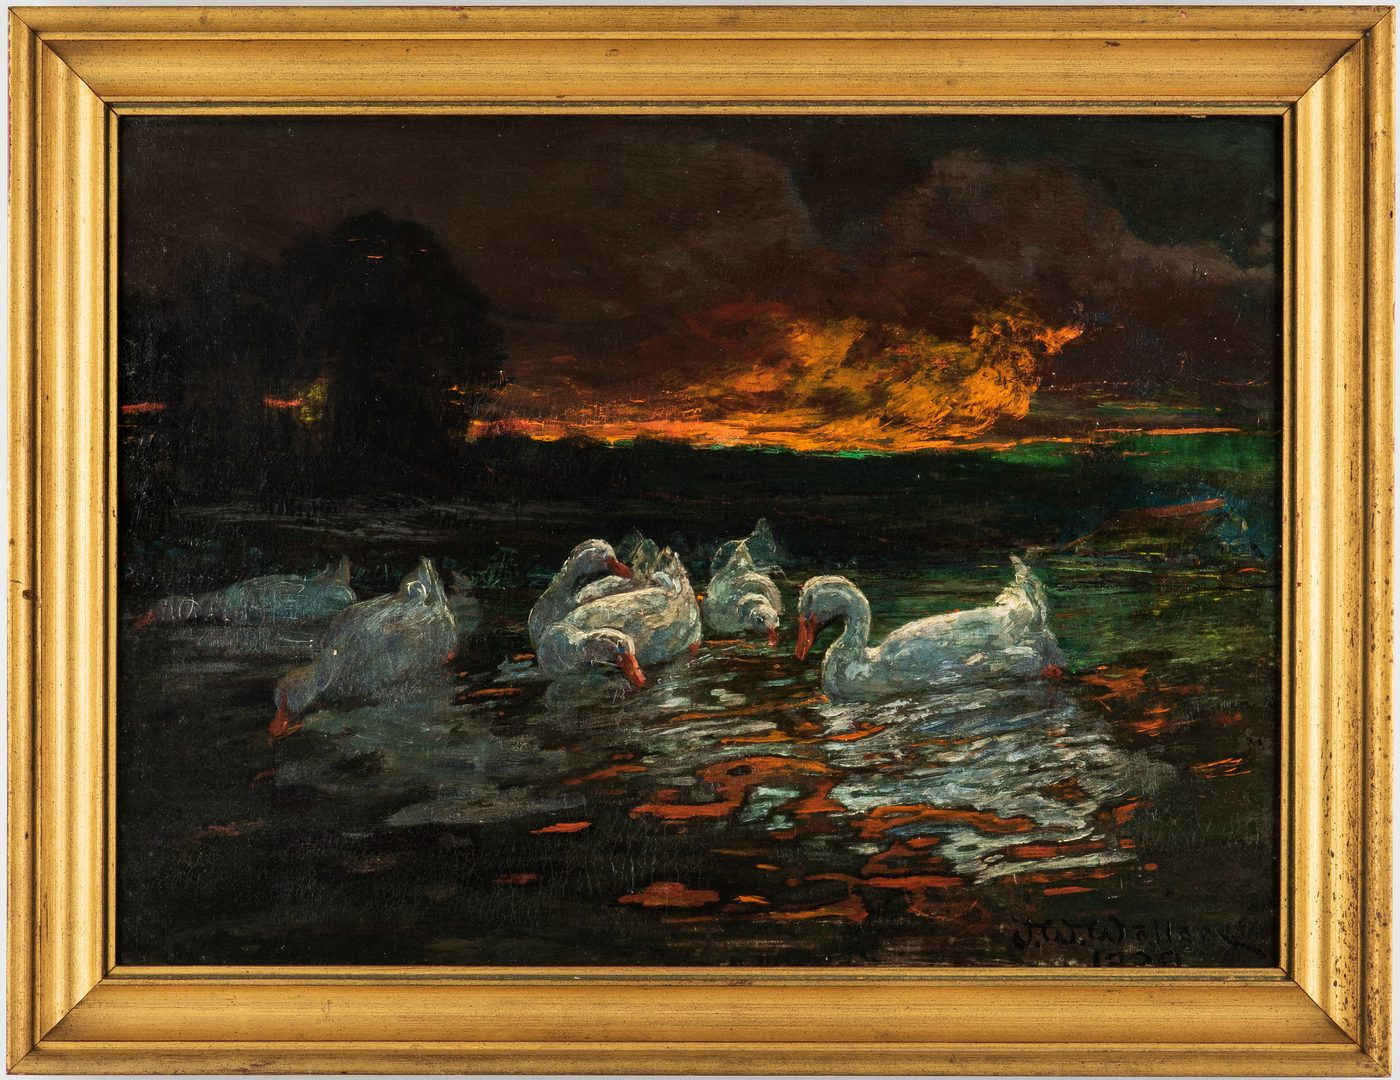 Lot 99: J. W. Wallace O/C, Swans at Sunset